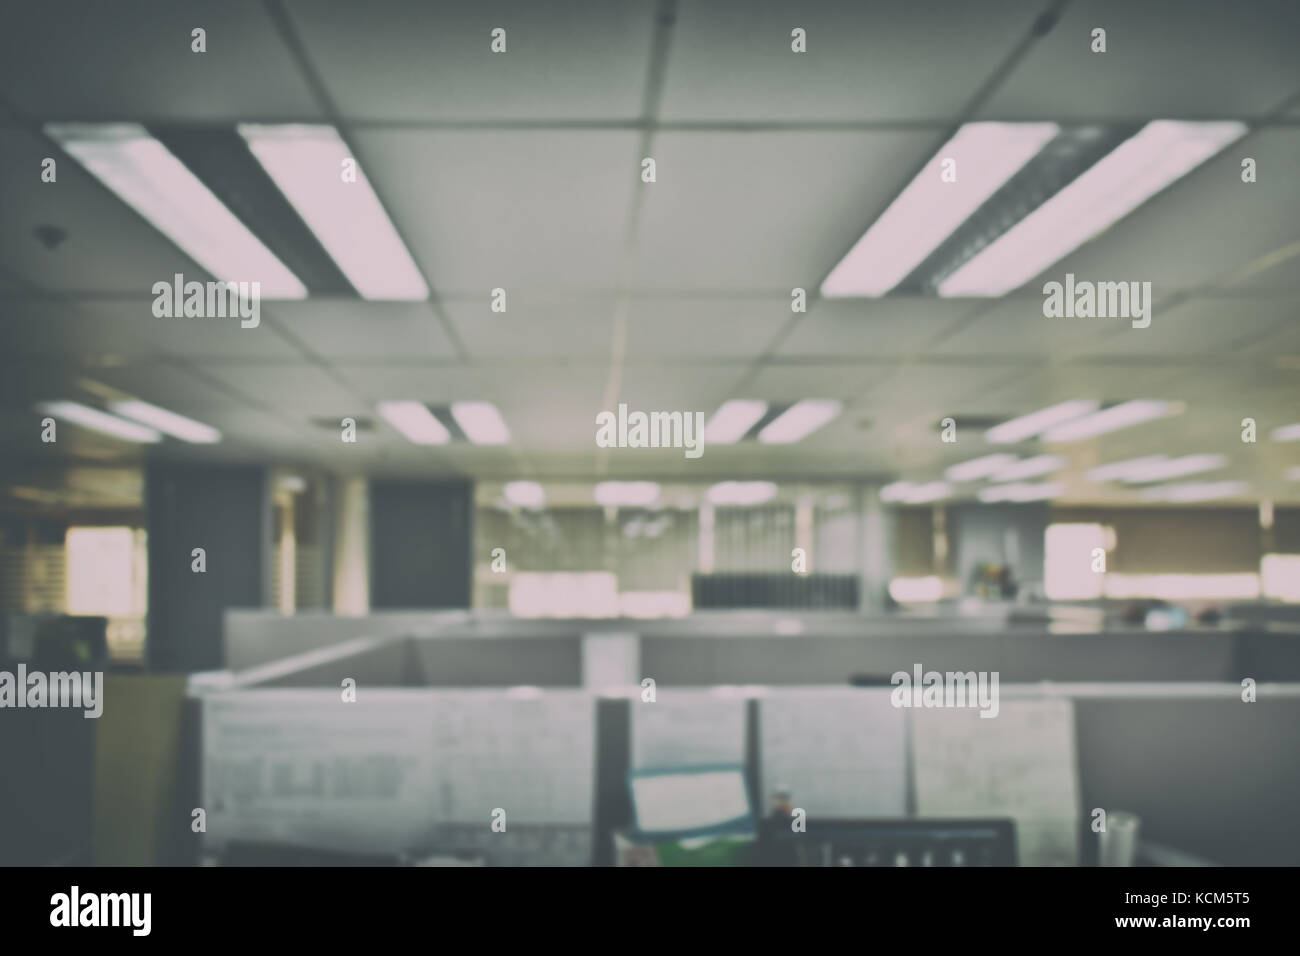 Awesome Defocus Office Space Background